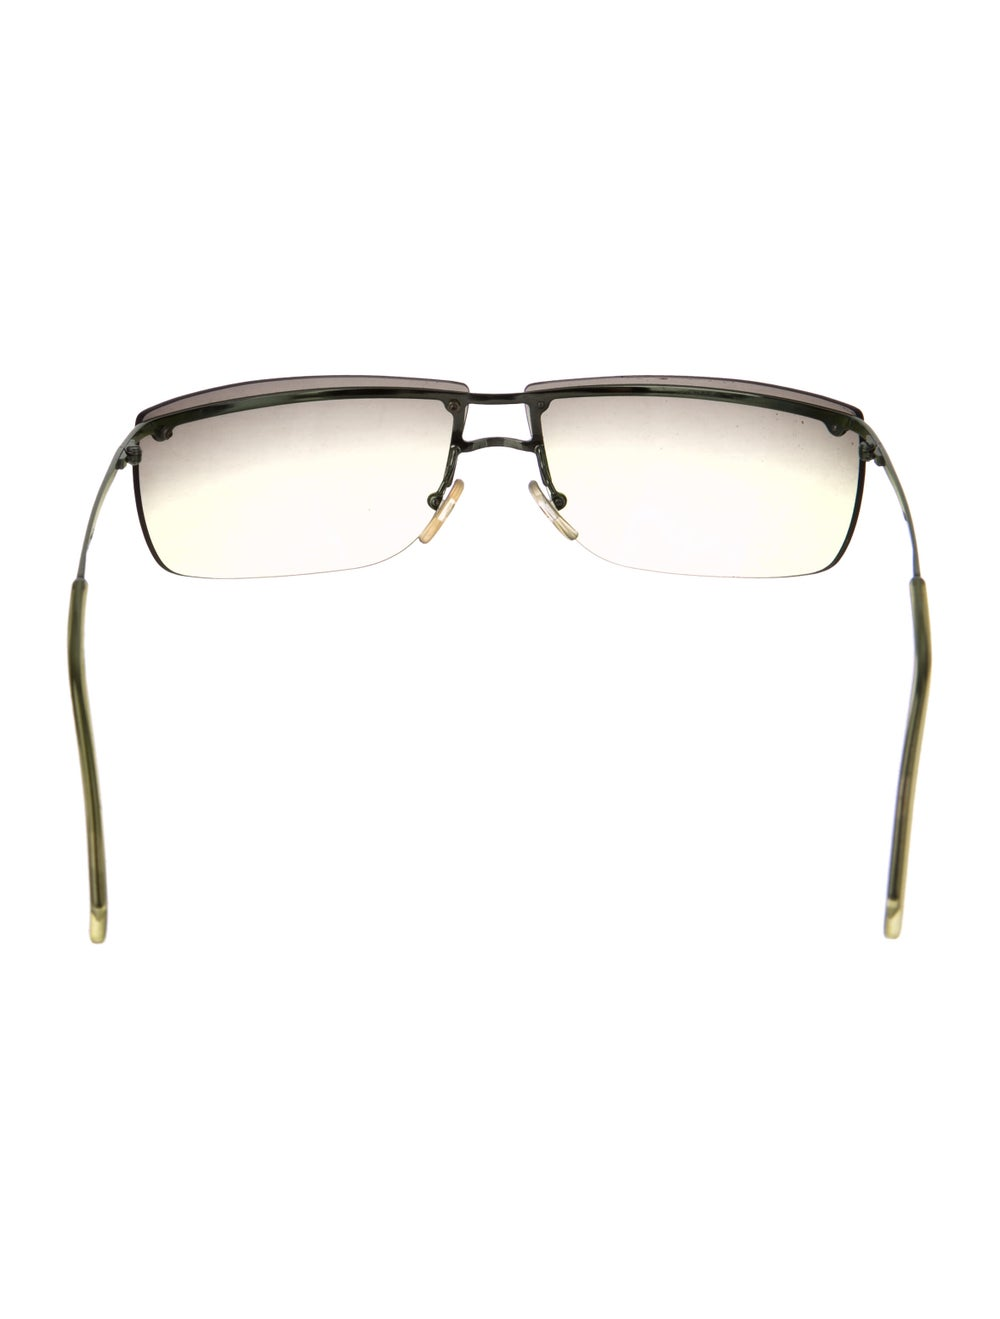 Gucci Rimless Square Sunglasses Lime - image 3